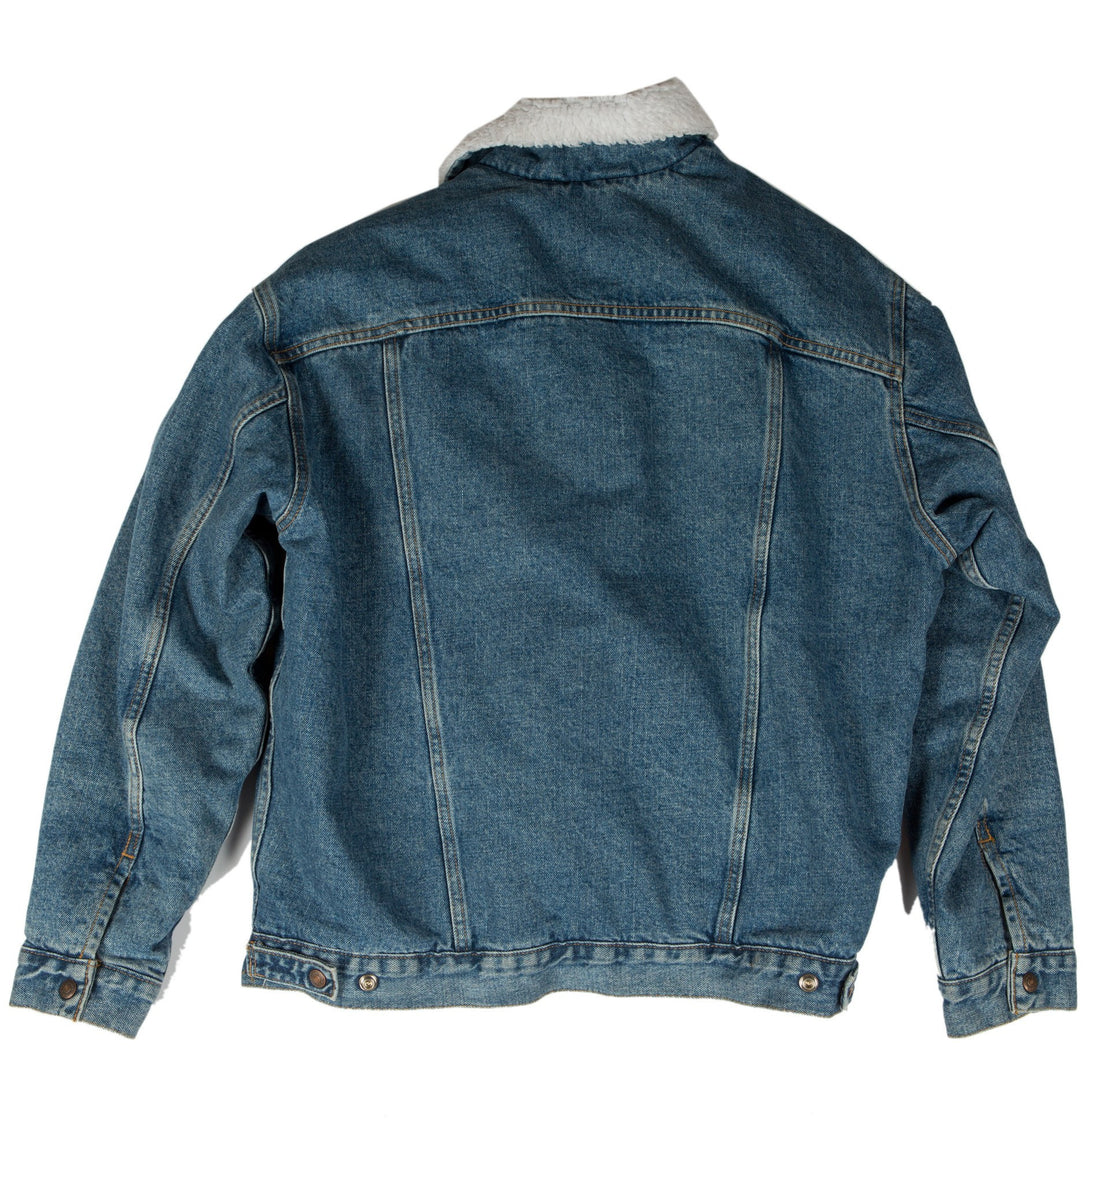 Vintage Levis Sherpa Denim Trucker Jacket - Vintage - Iron and Resin